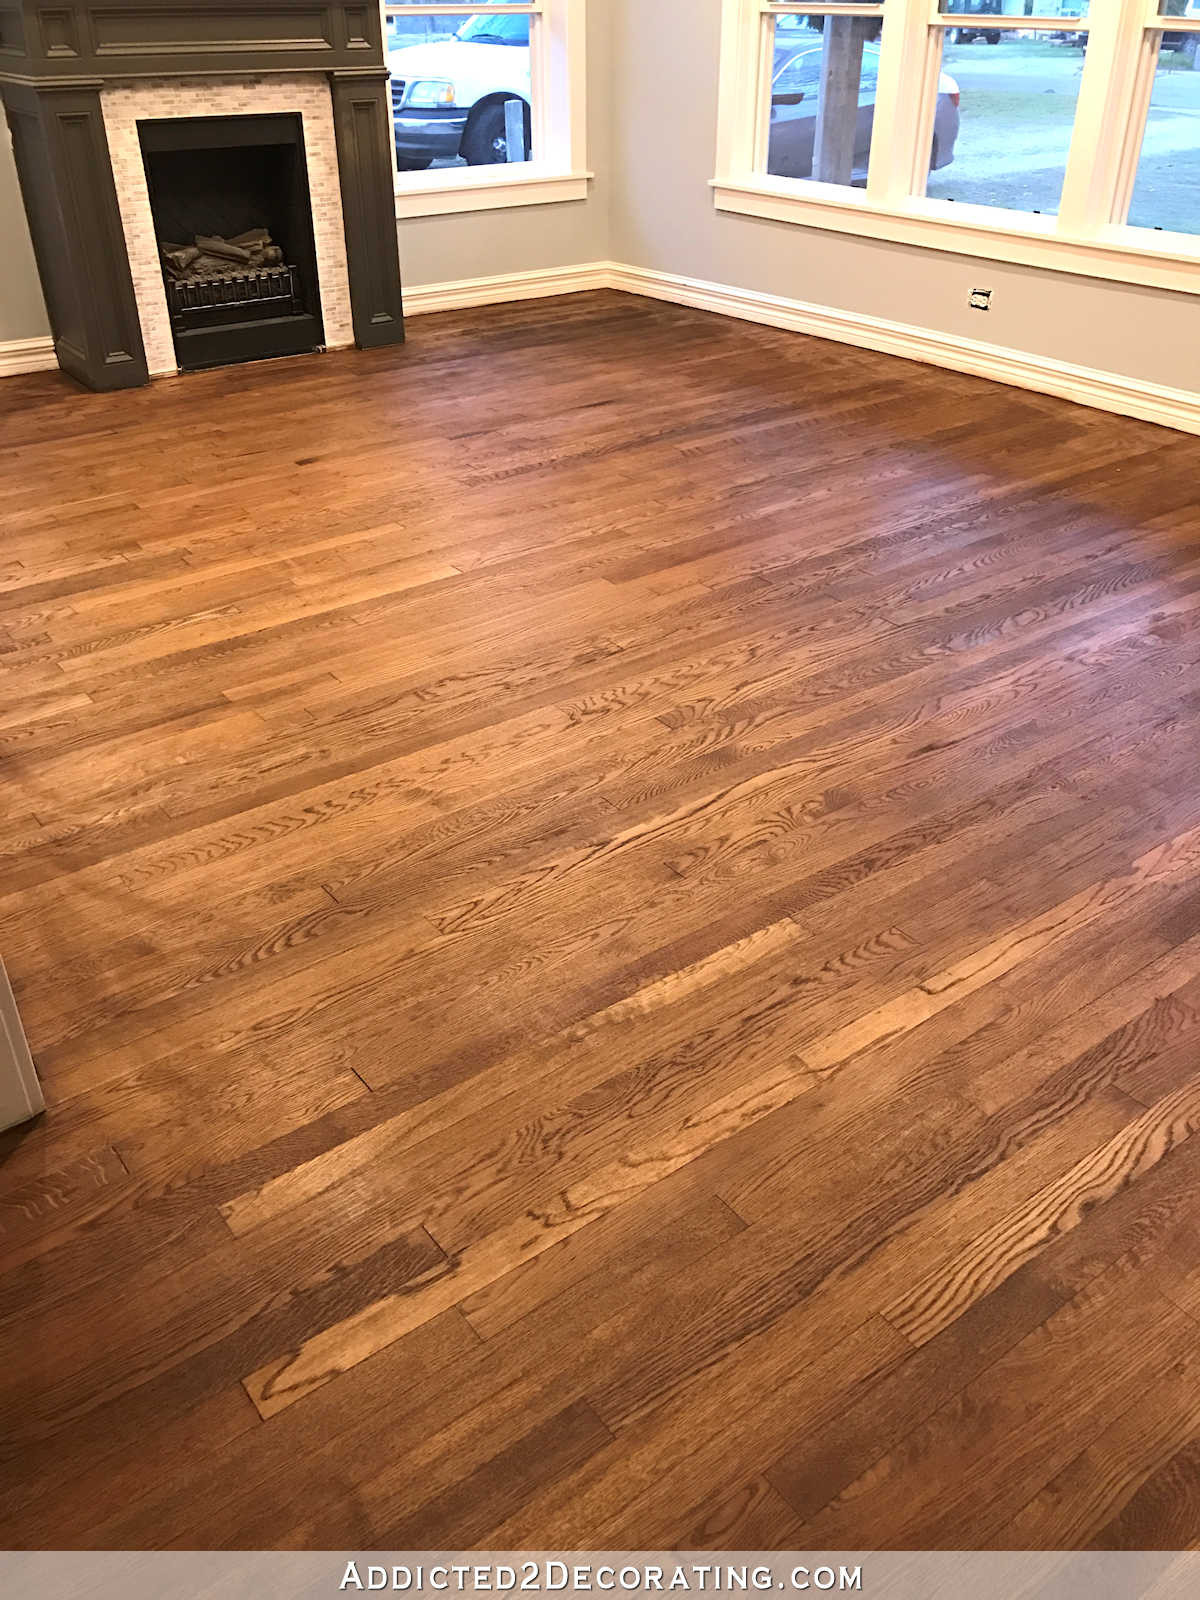 25 Cute Dark Hardwood Floors In Small Spaces 2021 free download dark hardwood floors in small spaces of adventures in staining my red oak hardwood floors products process throughout staining red oak hardwood floors 8a living room and entryway